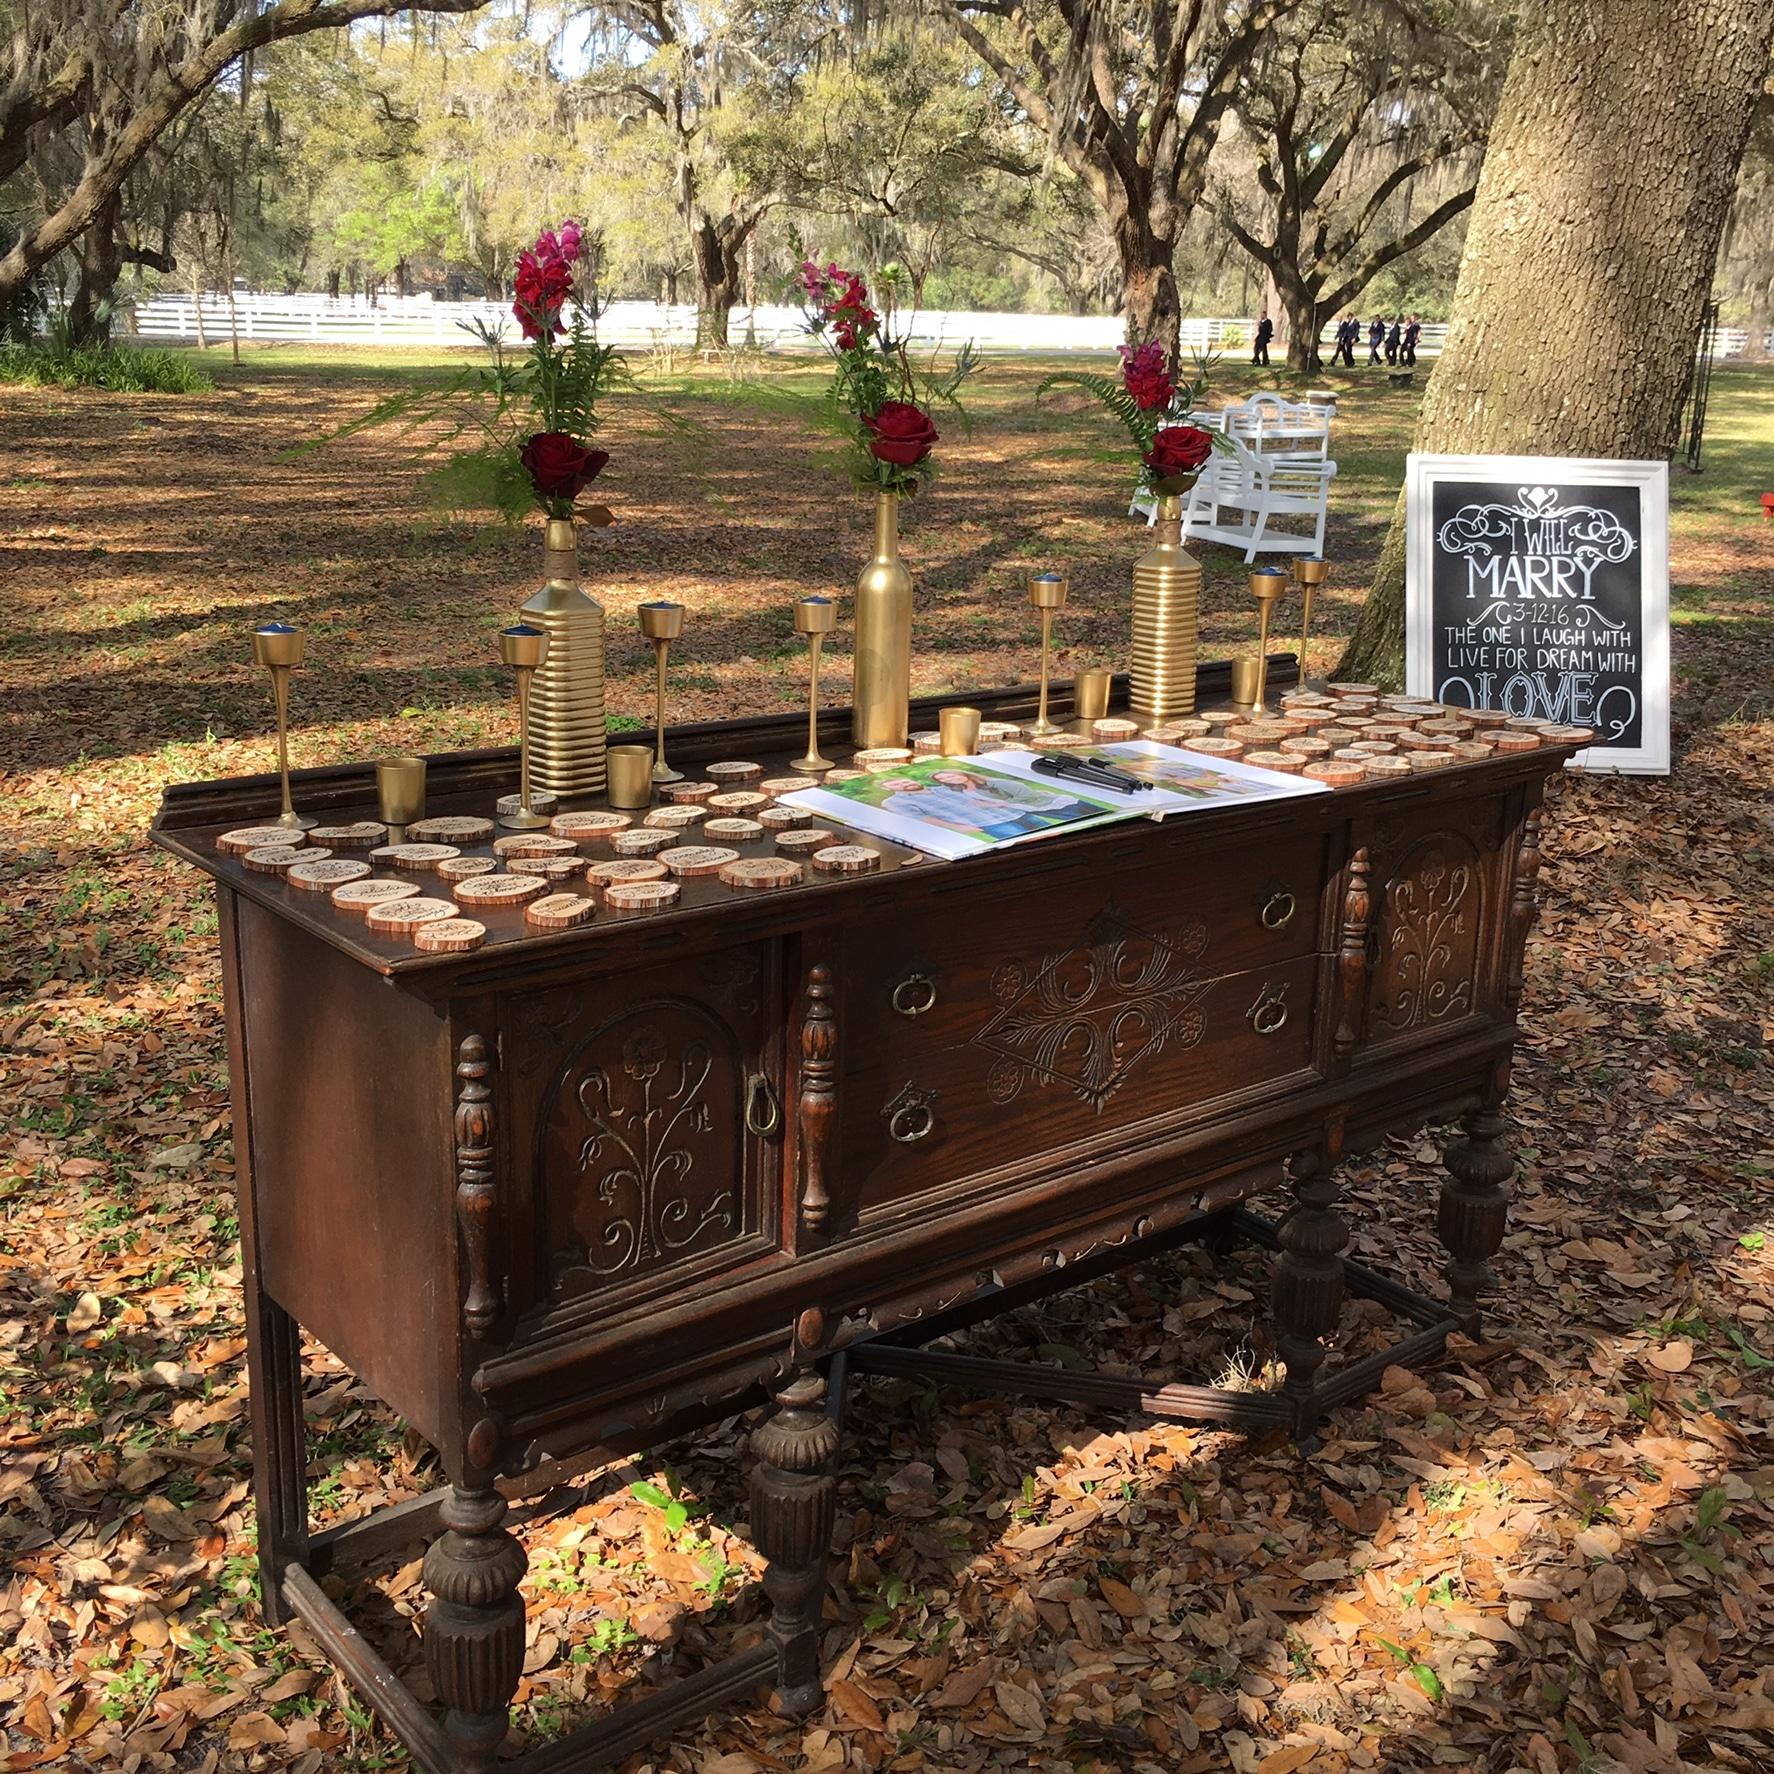 Rocking H Ranch - antique table set up outdoors